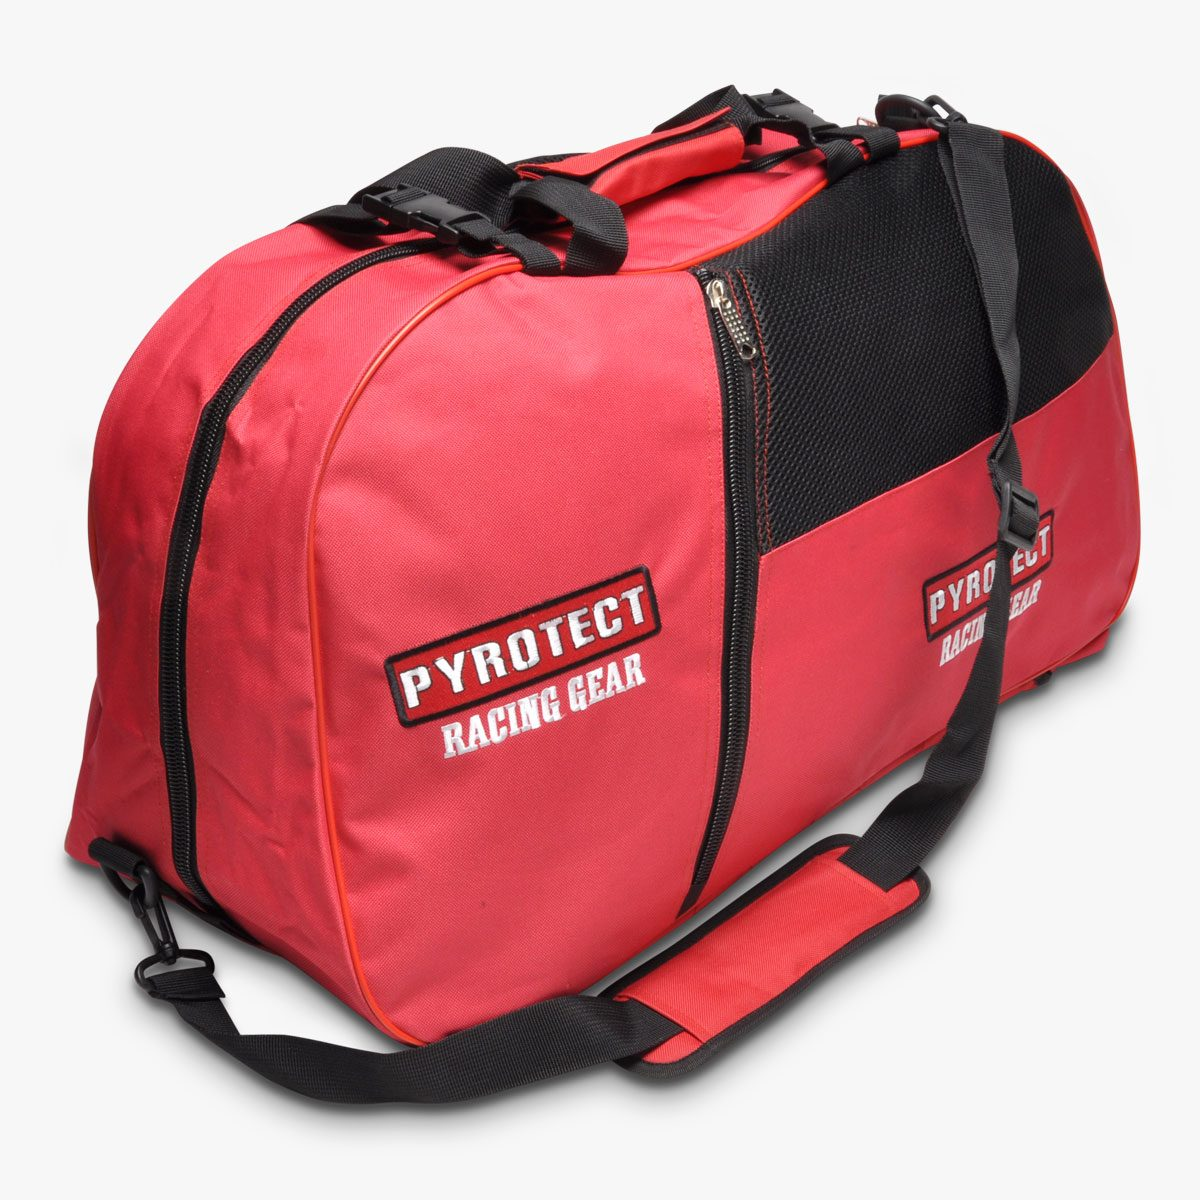 40ef3d6f03 3-Compartment Equipment Bag - Pyrotect